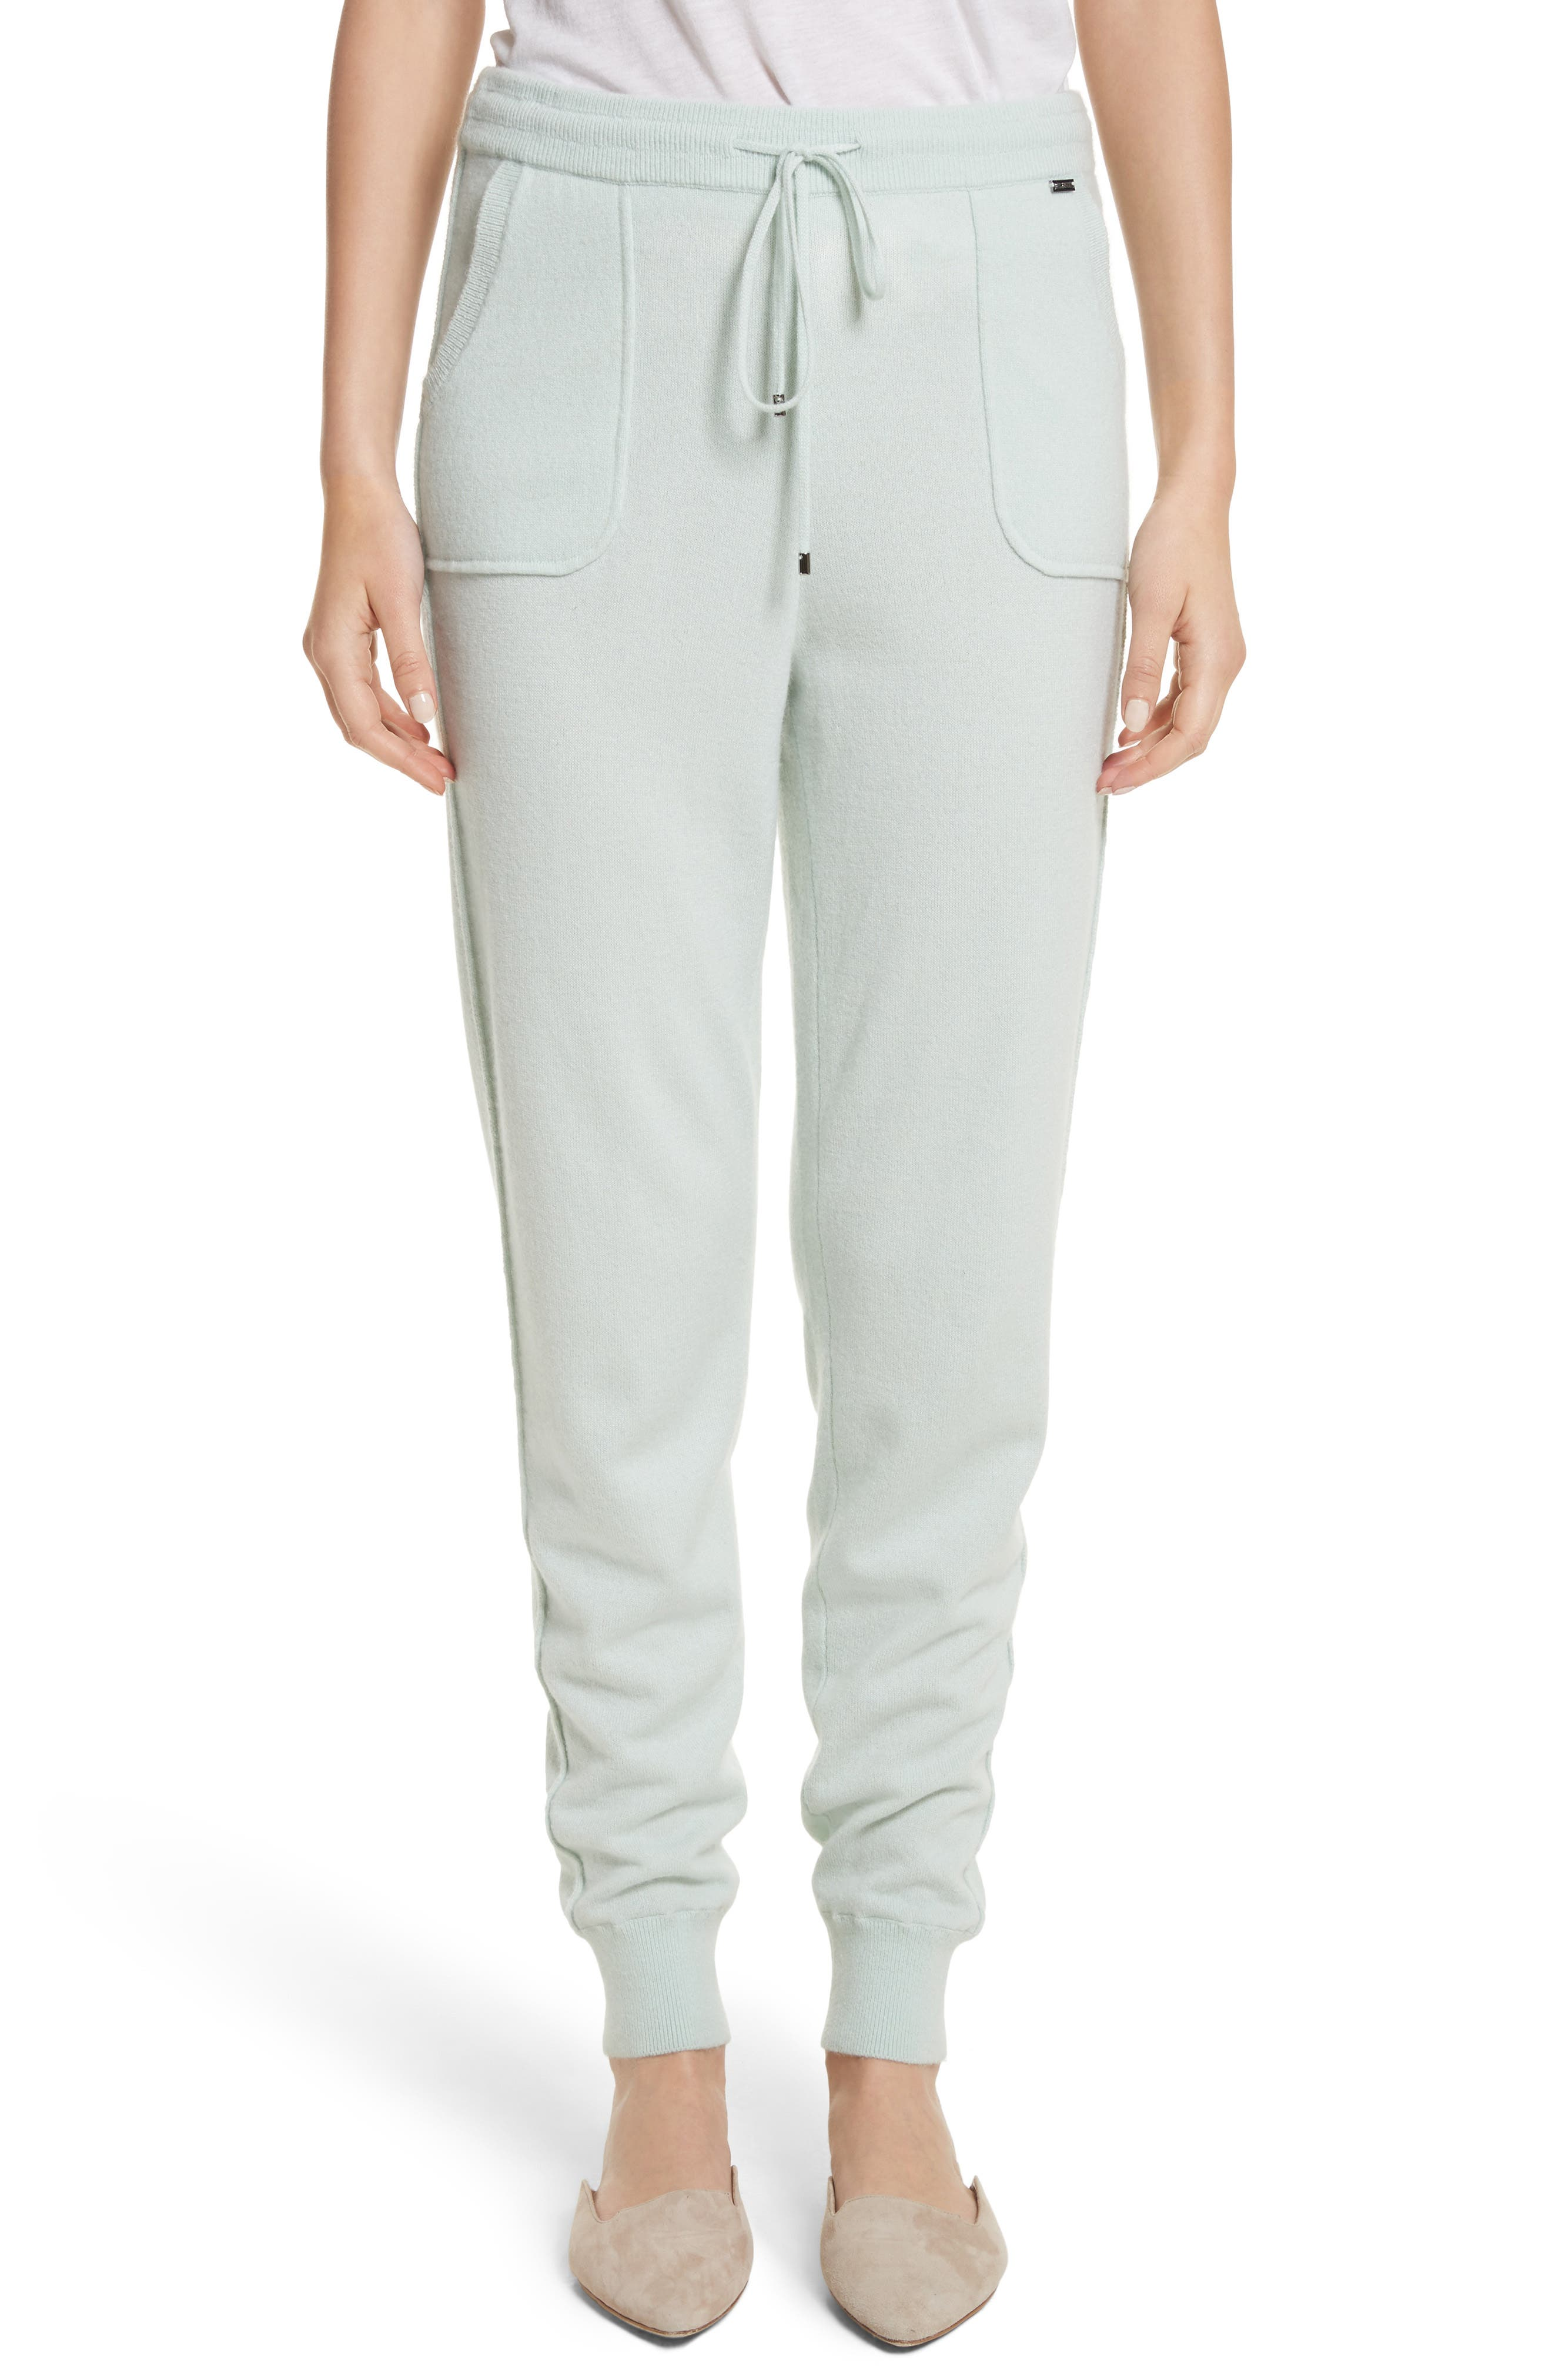 Cashmere Jersey Sweatpants,                             Main thumbnail 1, color,                             Mint